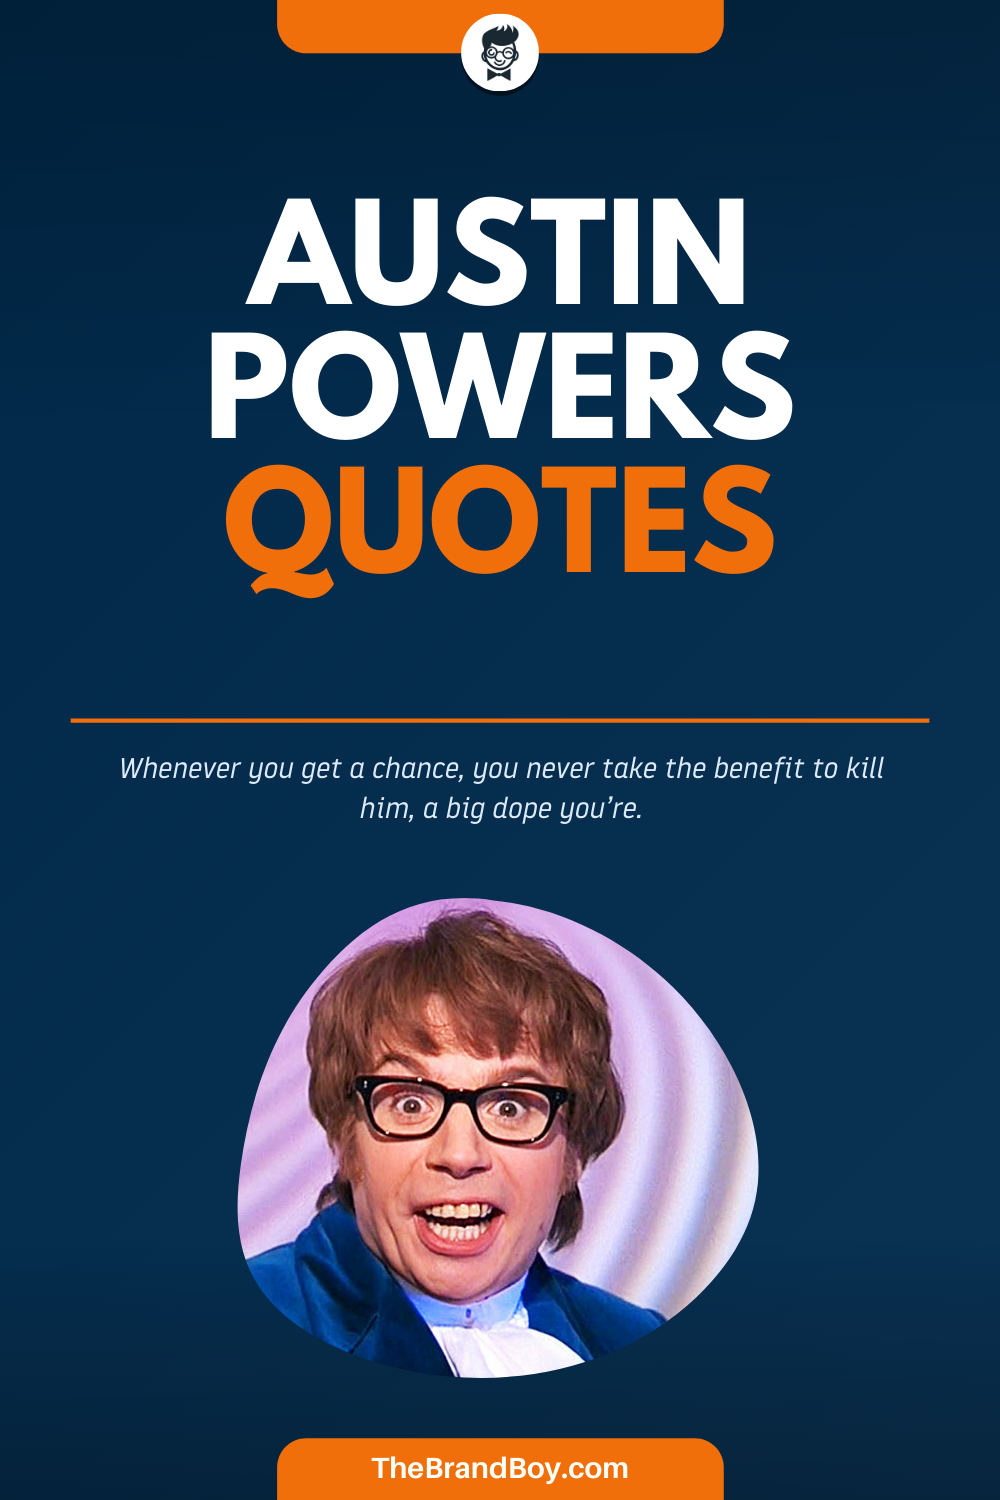 91 Funny Austin Powers Sayings And Quotes Thebrandboy Com Austin Powers Austin Powers Quotes Powerful Quotes